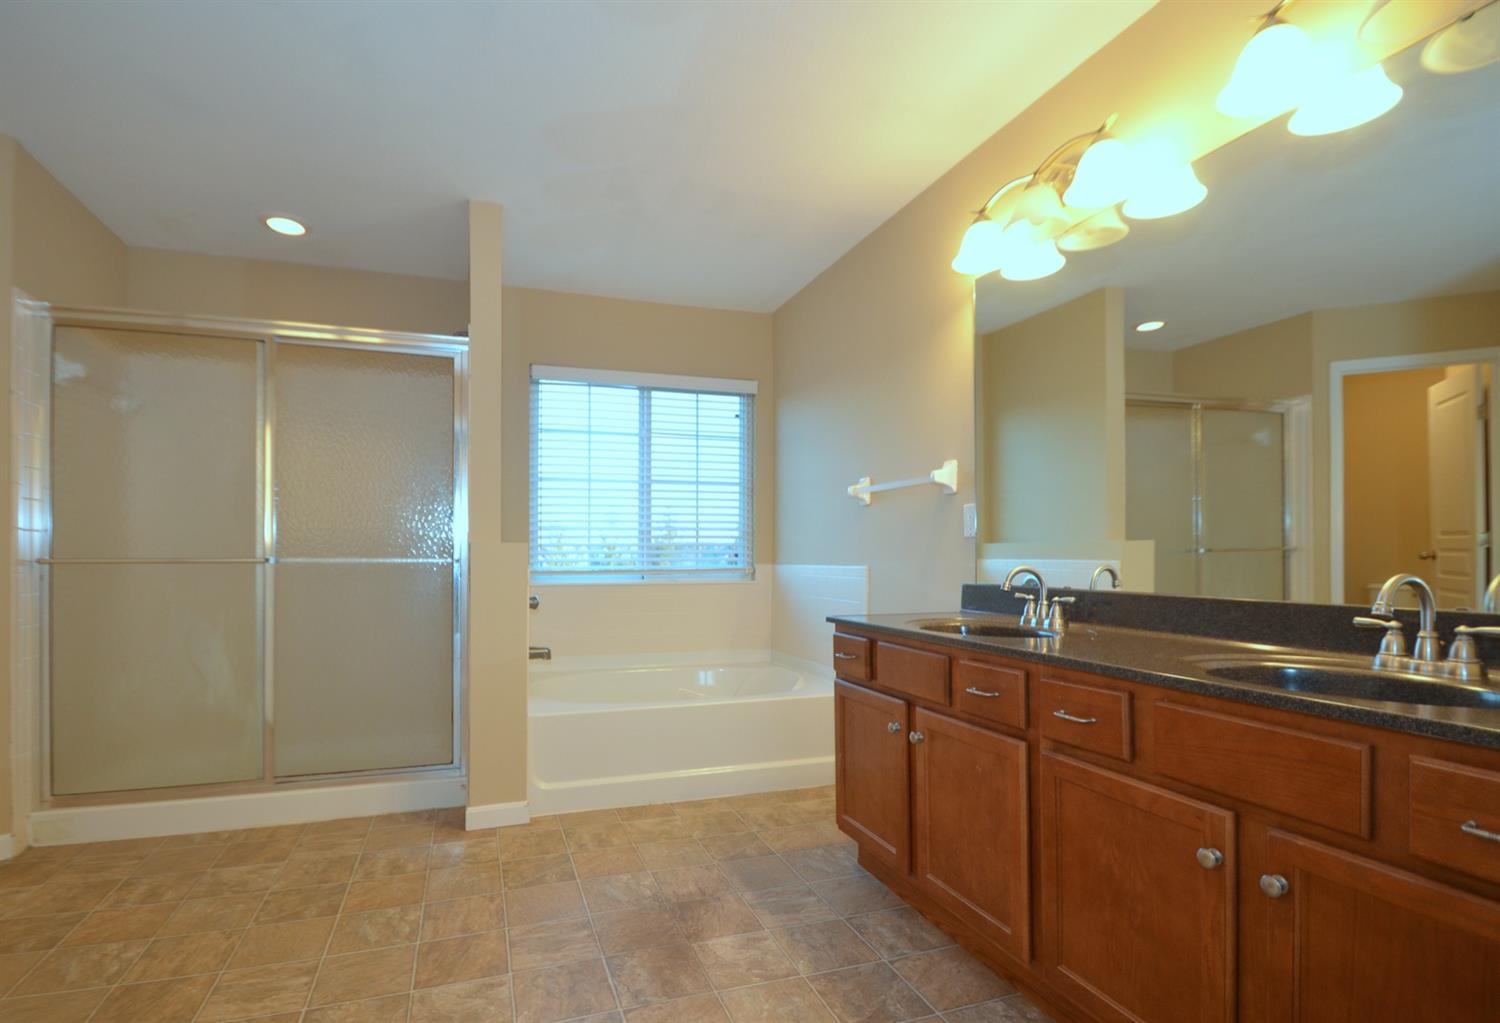 The ensuite master bath feautures a double vanity, oversized soaking tub and separate shower.